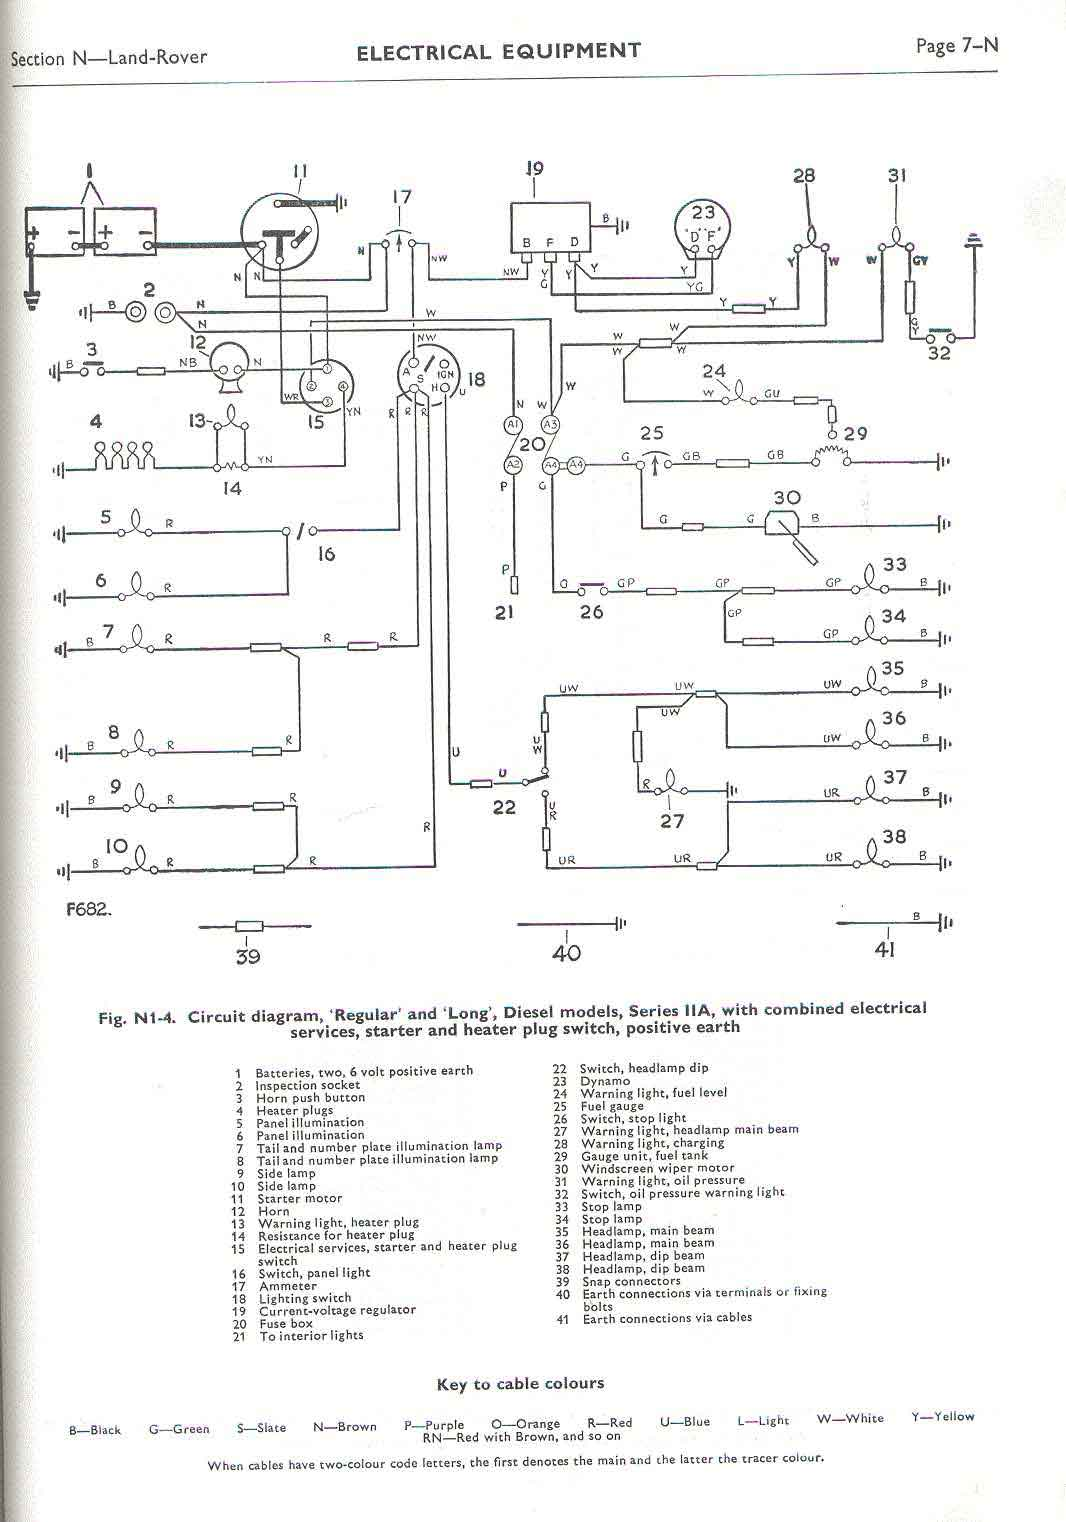 SIIA+VED2 land rover faq repair & maintenance series electrical land rover series 3 wiring diagram at reclaimingppi.co